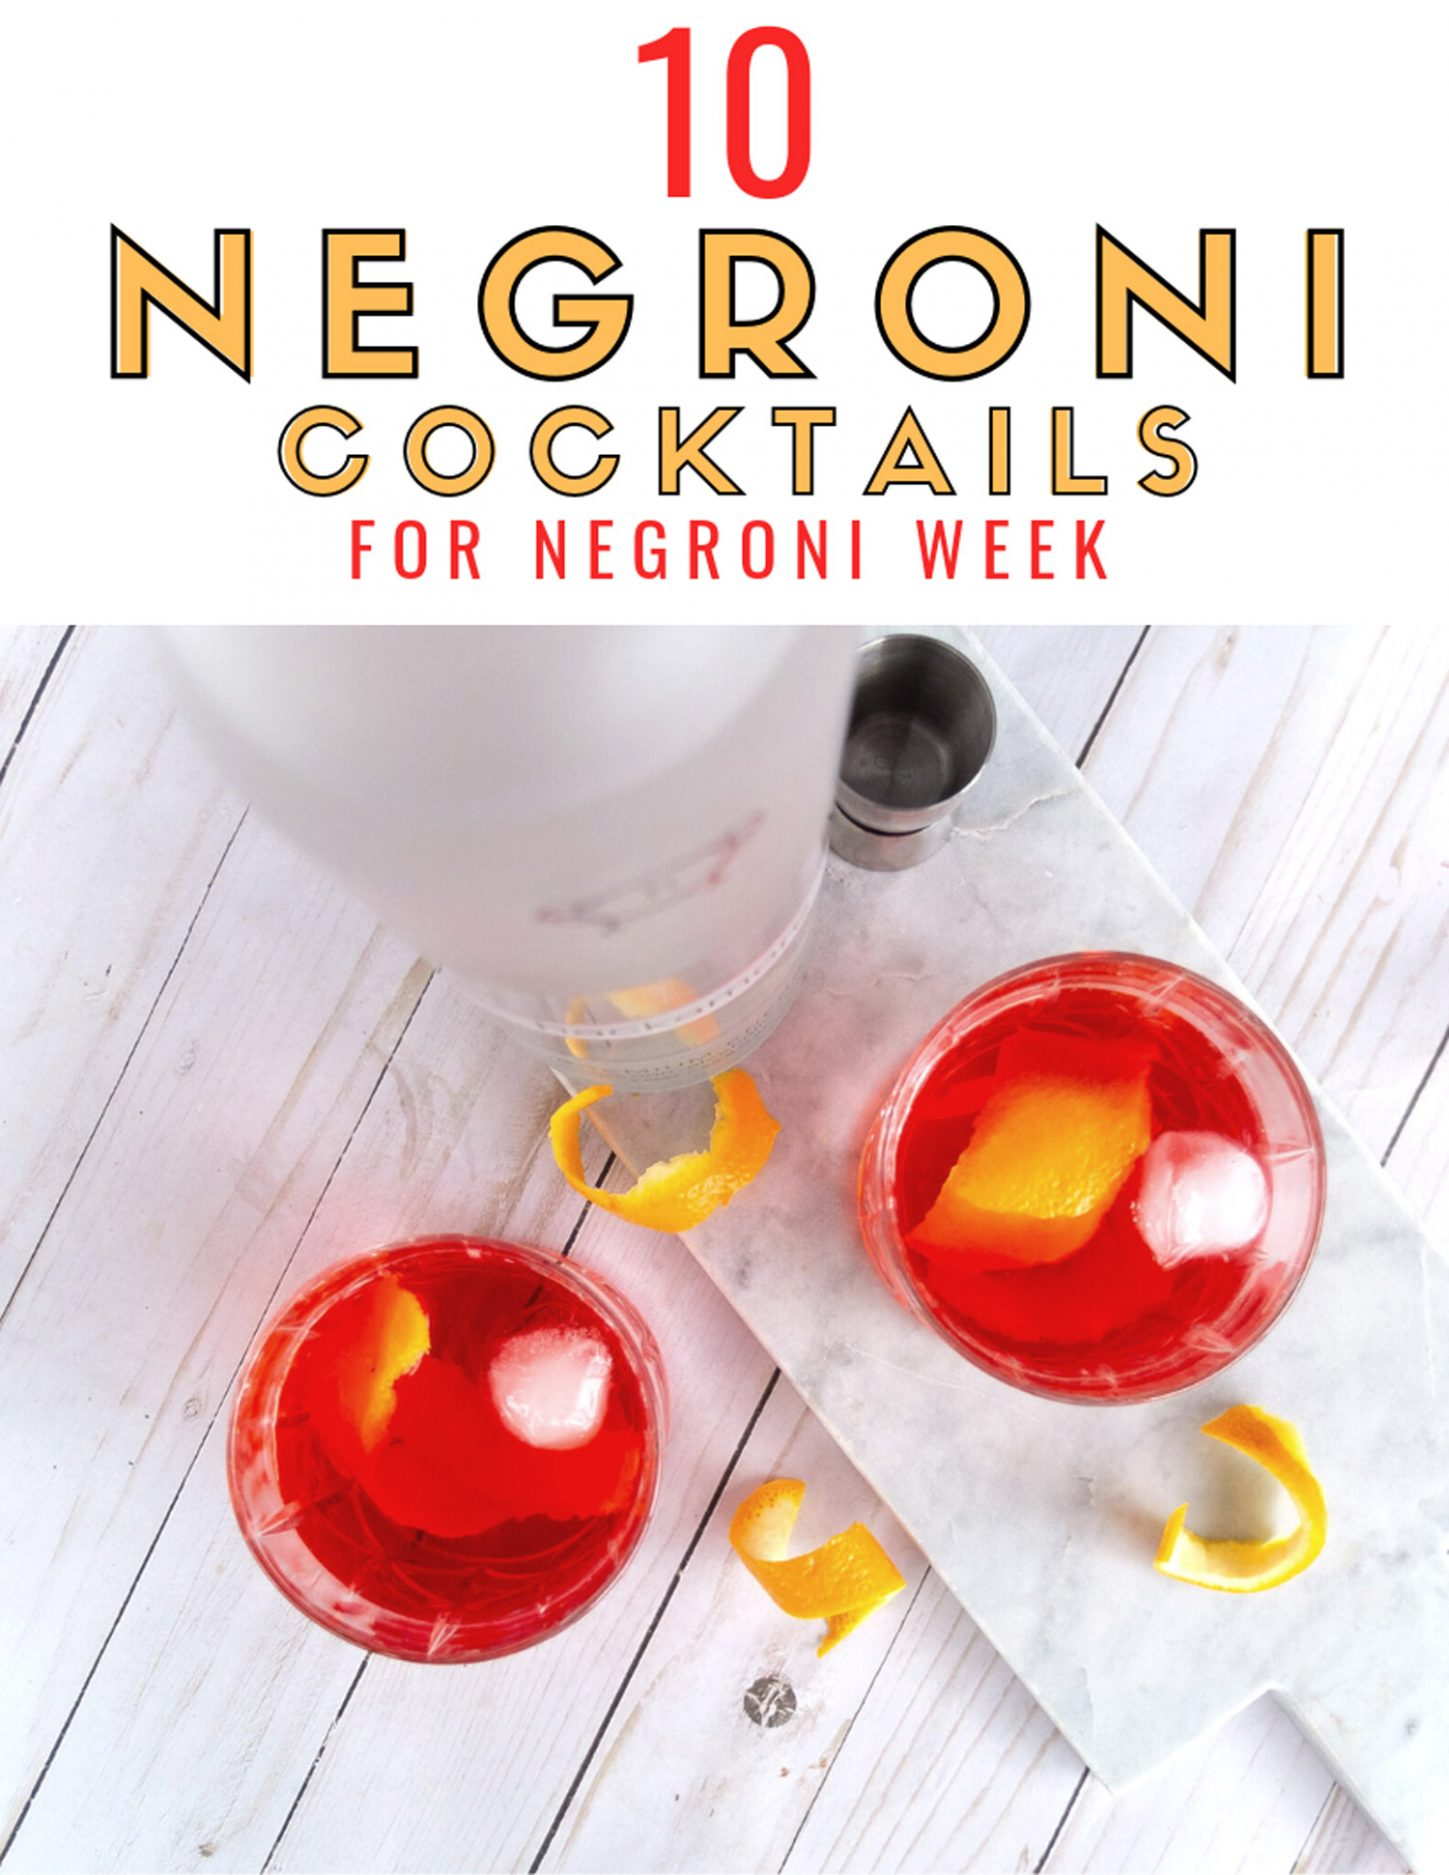 10 Negroni variation recipes that are perfect for celebrating Negroni Week and will hopefully inspire you to get out and sip for a cause! #Negroni #negroniweek #Gin #Campari #CocktailRecipes #reciperoundup #DrinkRecipe